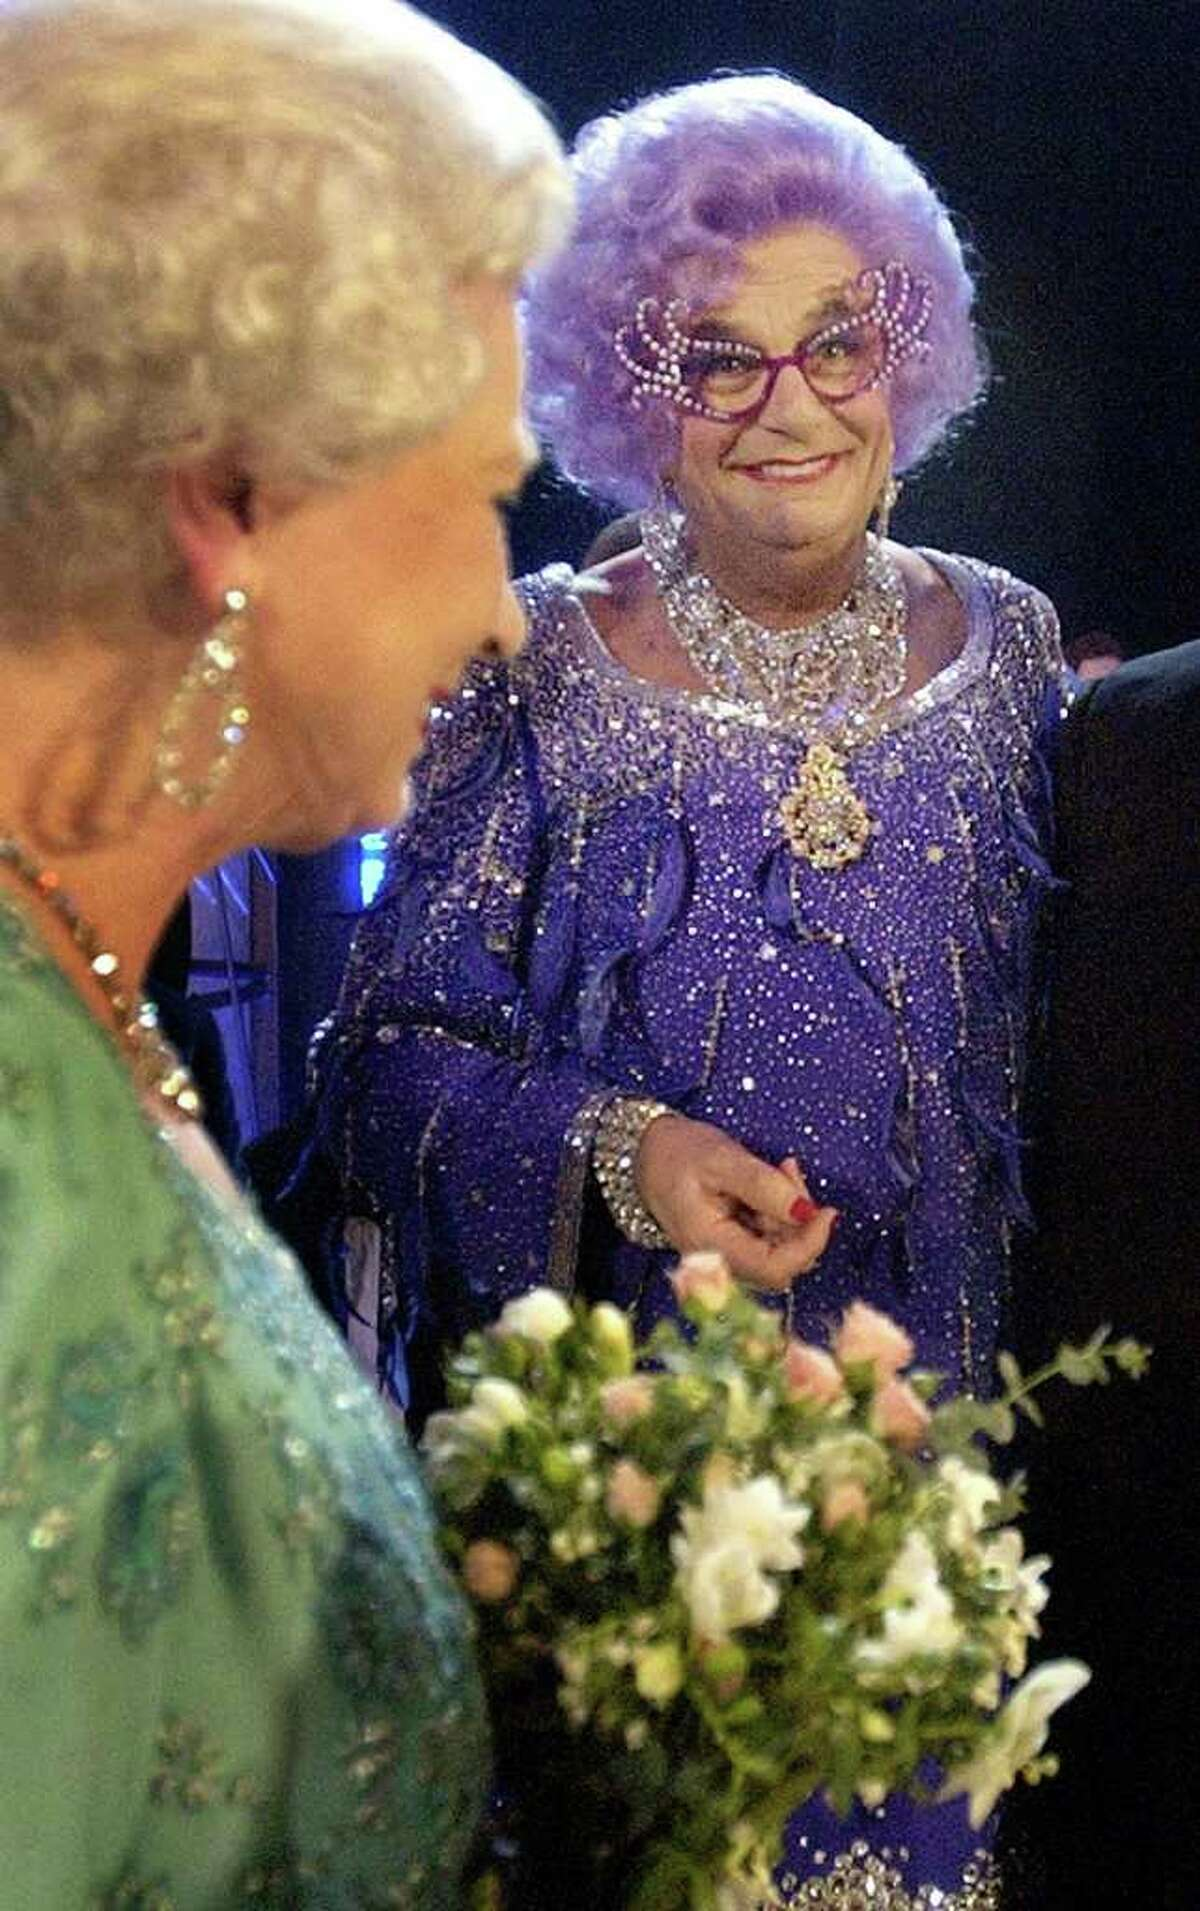 FILE-In this Nov. 24, 2003 file photo Britain's Queen Elizabeth II, left, meets Barry Humphries, aka Dame Edna Everage, at the Festival Theatre in Edinburgh for the start of the 75th Royal Variety performance in Edinburgh, Scotland. Dame Edna Everage, the Tony Award-winning drag act known for her purple hair and oversized rhinestone eyeglasses, will soon open her final stage show tour in Australia. (AP Photo/David Cheskin, Pool, File)